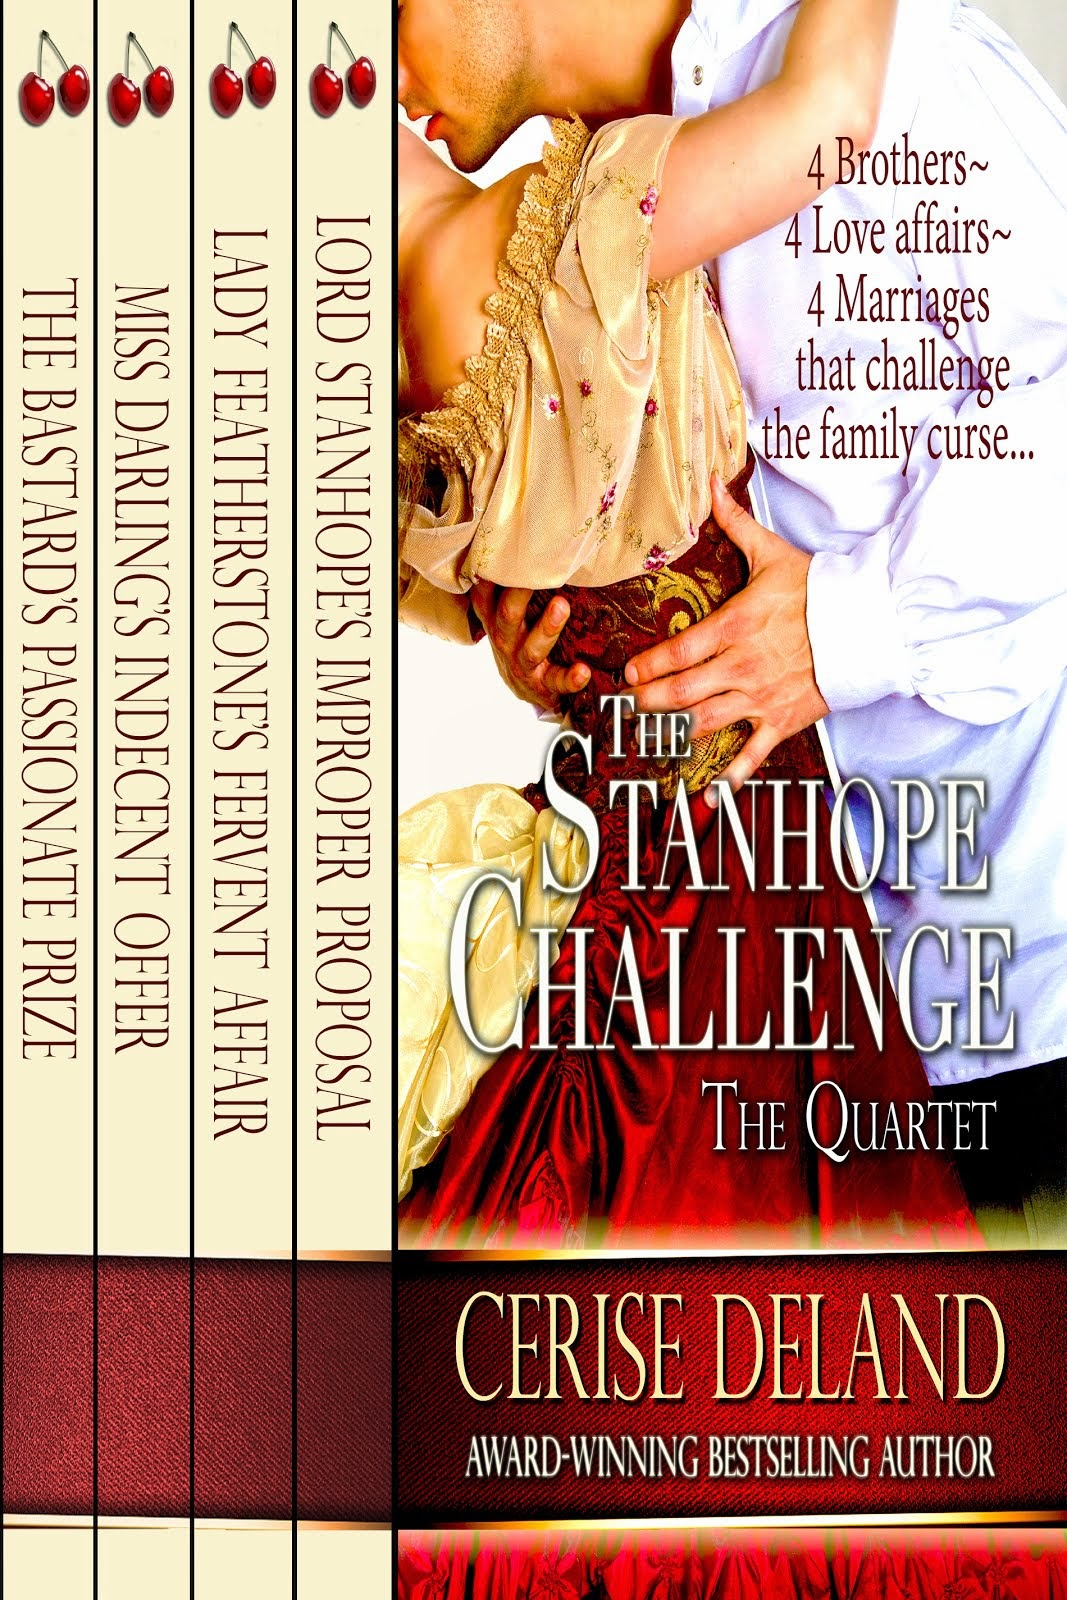 THE STANHOPE CHALLENGE, #1 Regency for 5+ weeks!